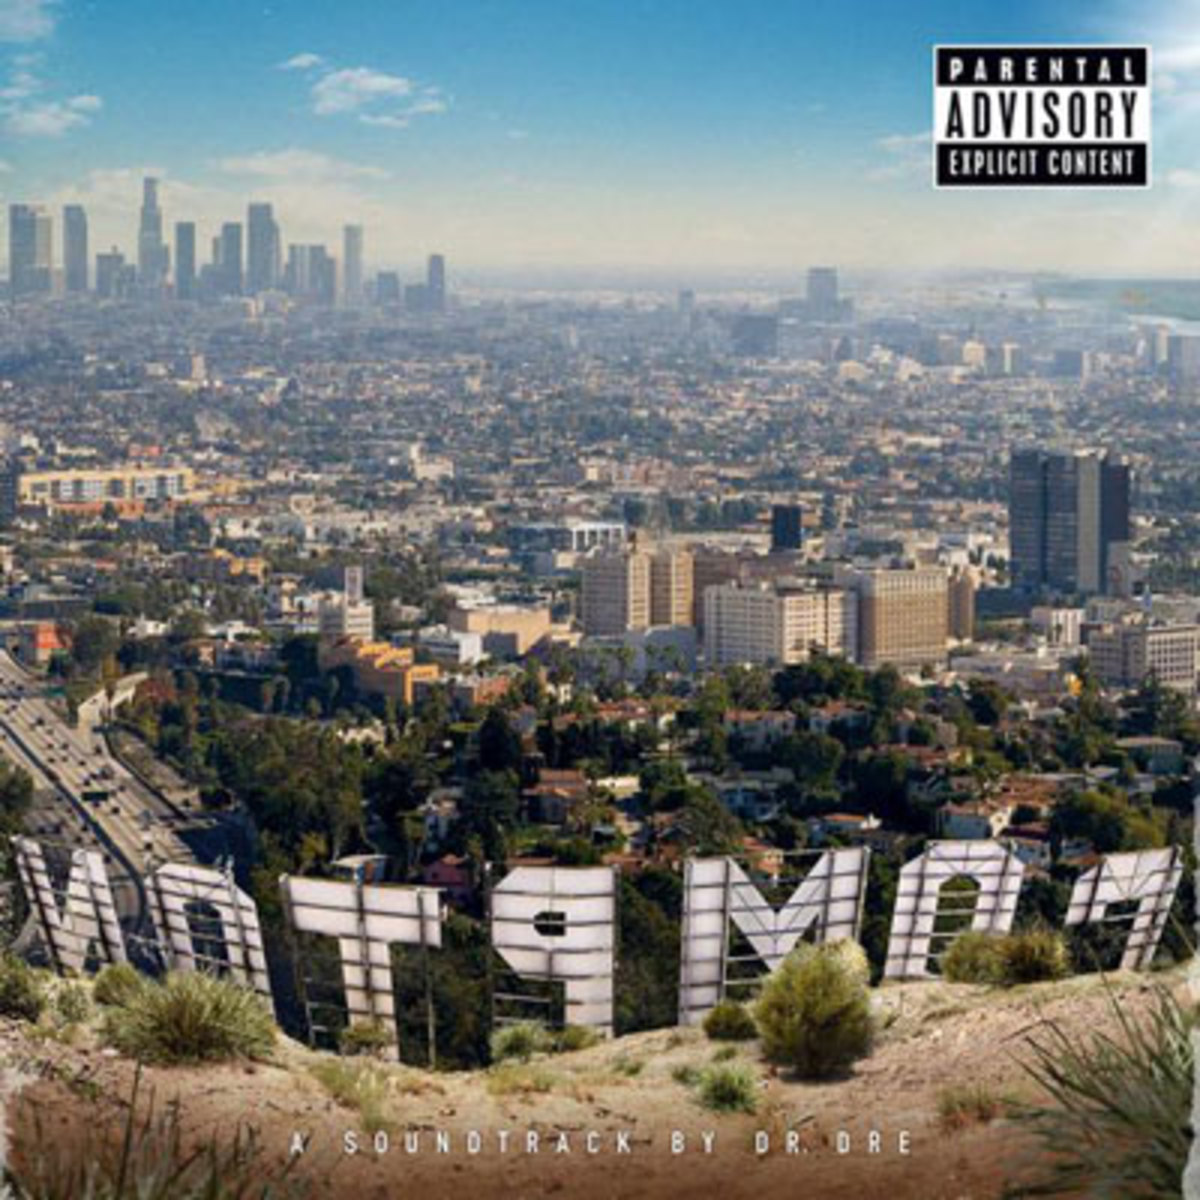 compton-a-soundtrack-by-dr-dre.jpg